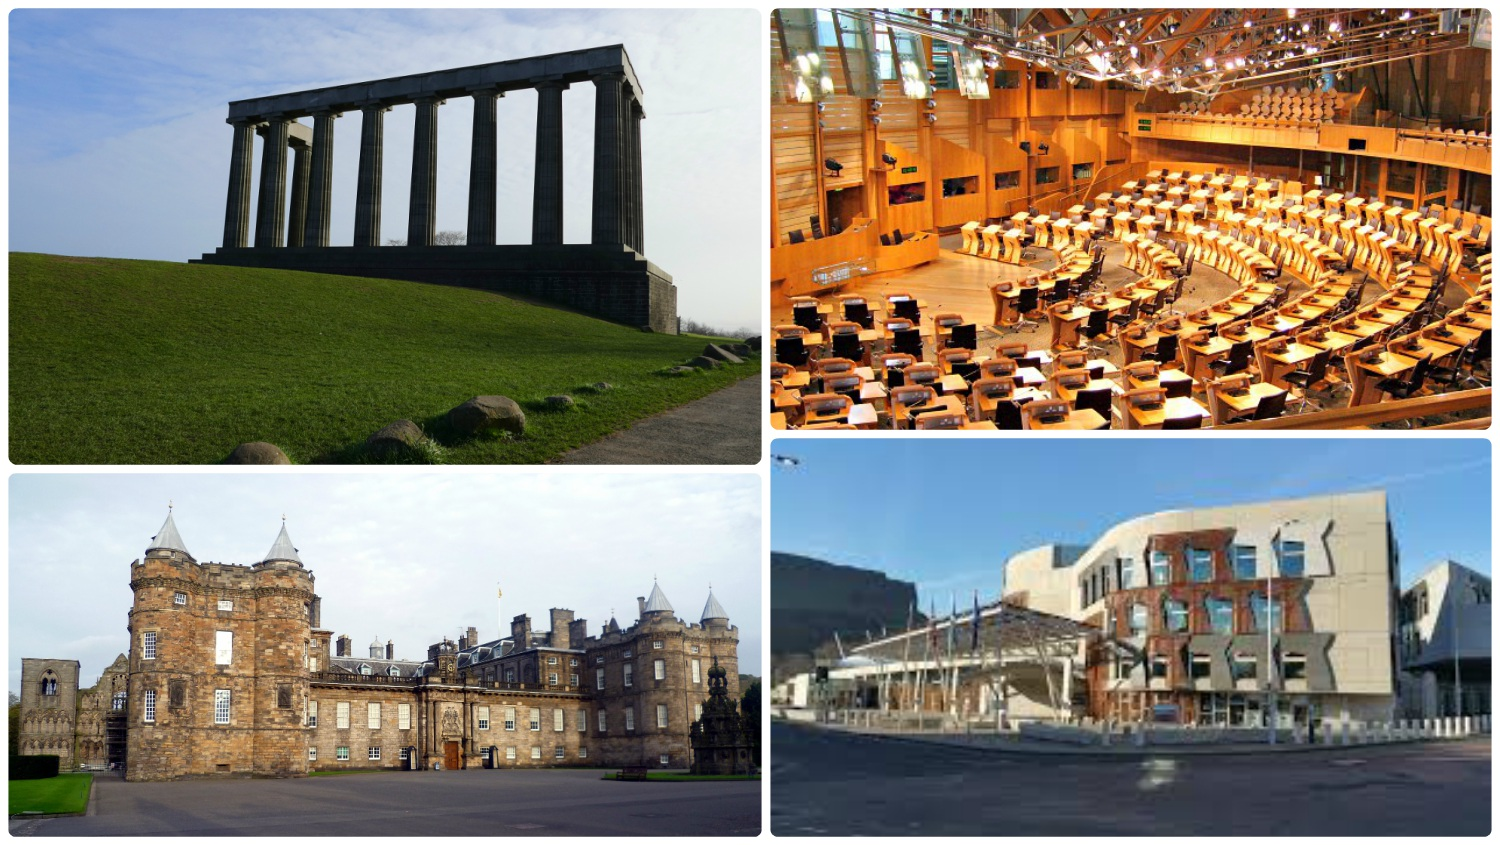 Edinburgh, Scotland, United Kingdom. Clockwise (from the top left): National Monument of Scotland on Calton Hill, Scottish Parliament Hemicycle, Palace of Holyroodhouse, Scottish Parliament building.